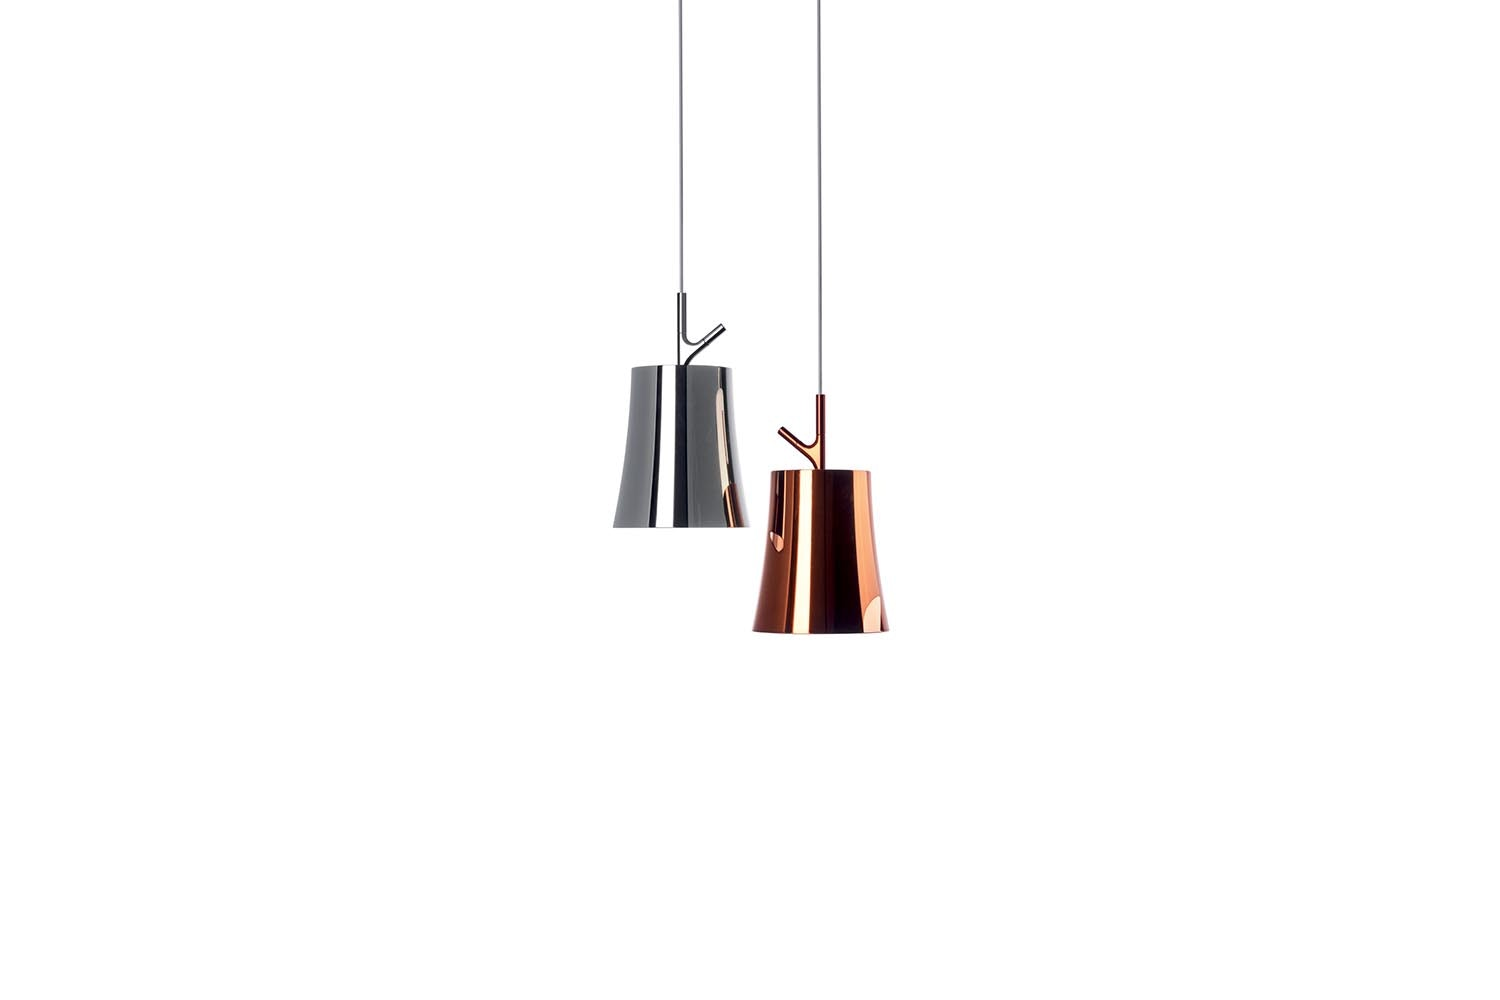 Birdie Metal Suspension Lamp by Ludovica & Roberto Palomba for Foscarini